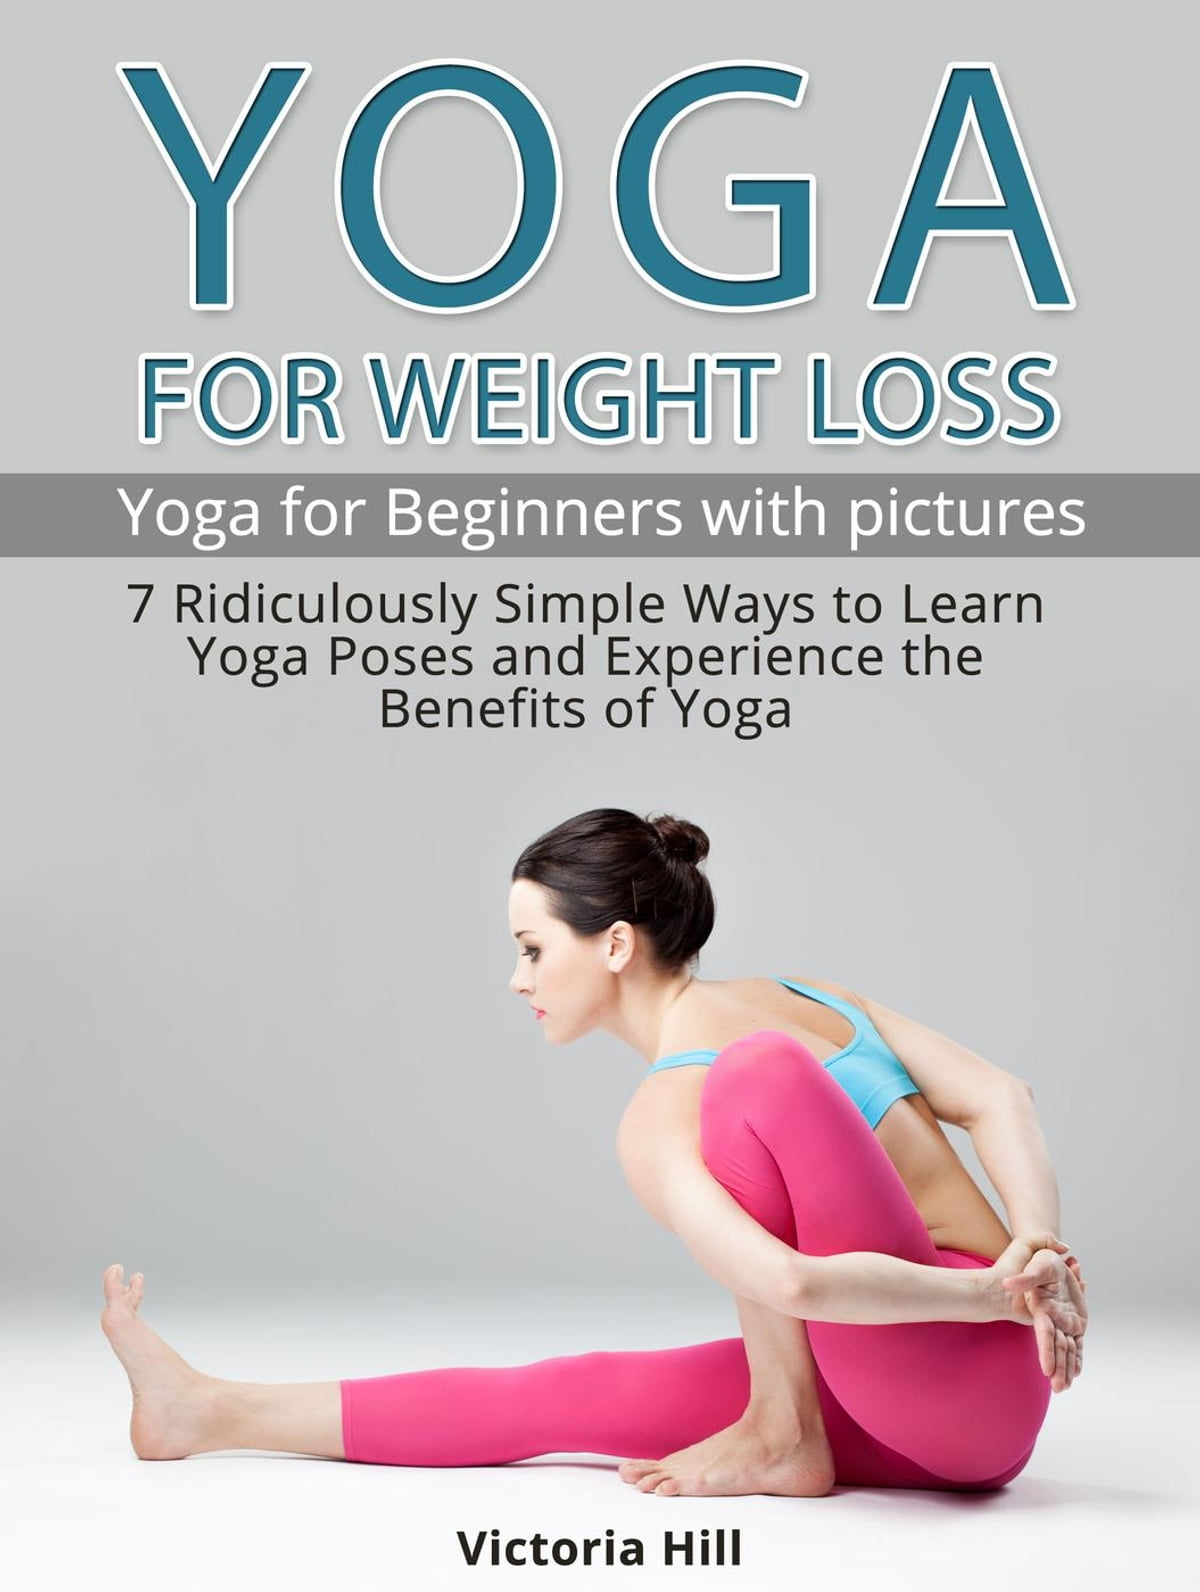 Yoga For Weight Loss 7 Ridiculously Simple Ways To Learn Yoga Poses And Experience The Benefits Of Yoga Yoga For Beginners Ebook By Victoria Hill 9781386542728 Rakuten Kobo United States